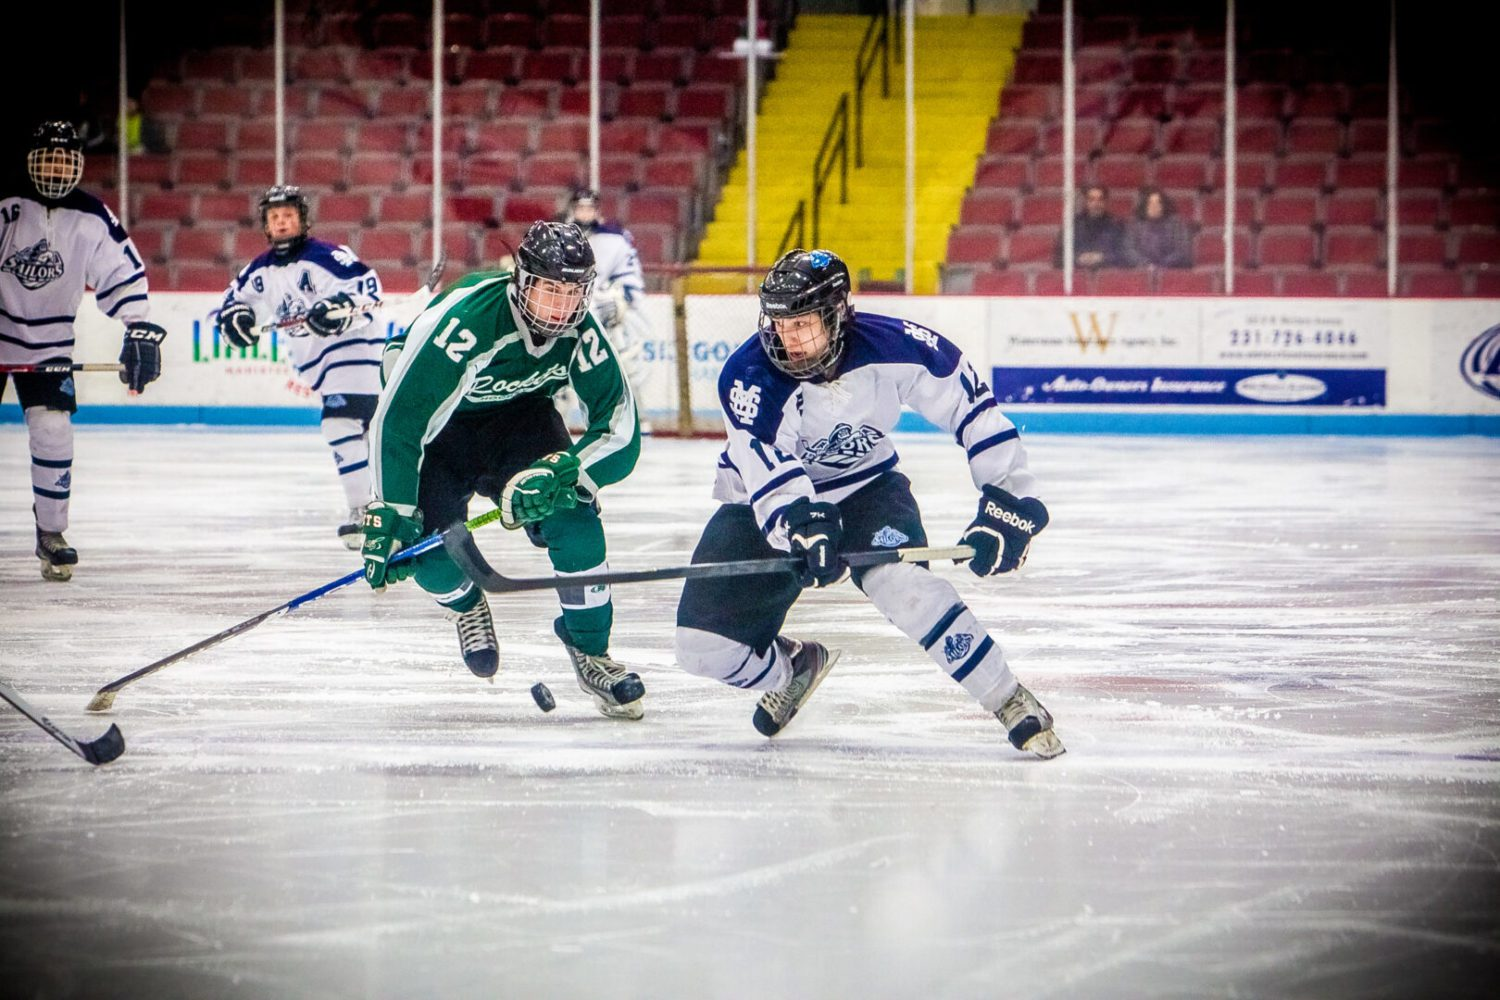 Josh Smith nets two goals as Reeths-Puffer earns second hockey win over rival Mona Shores